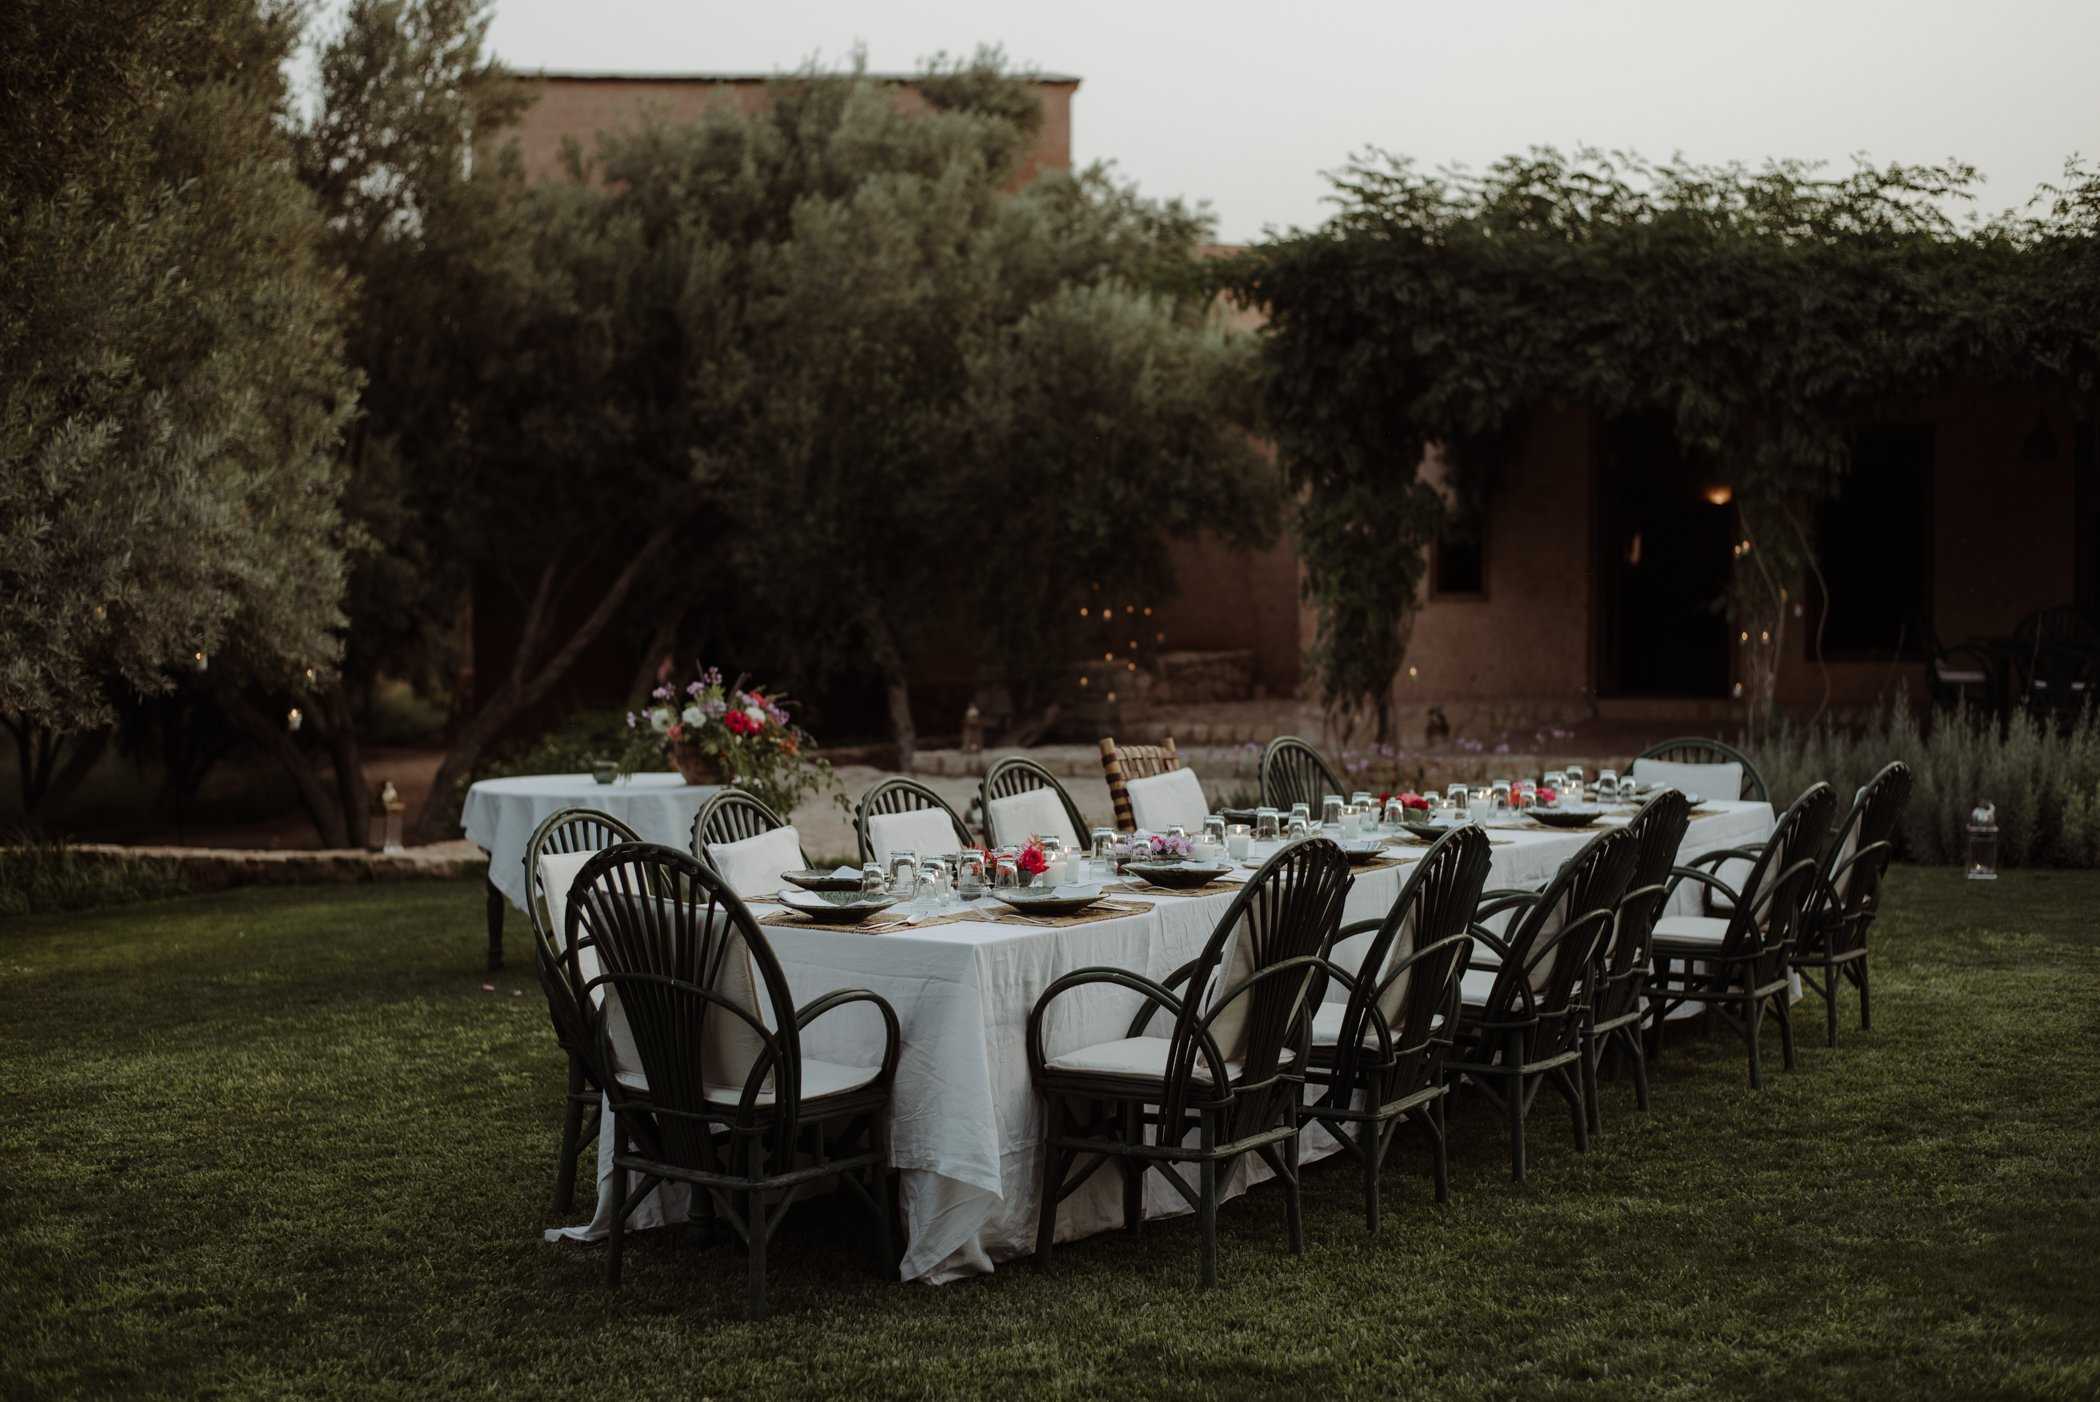 berber lodge morocco wedding photography 1 46